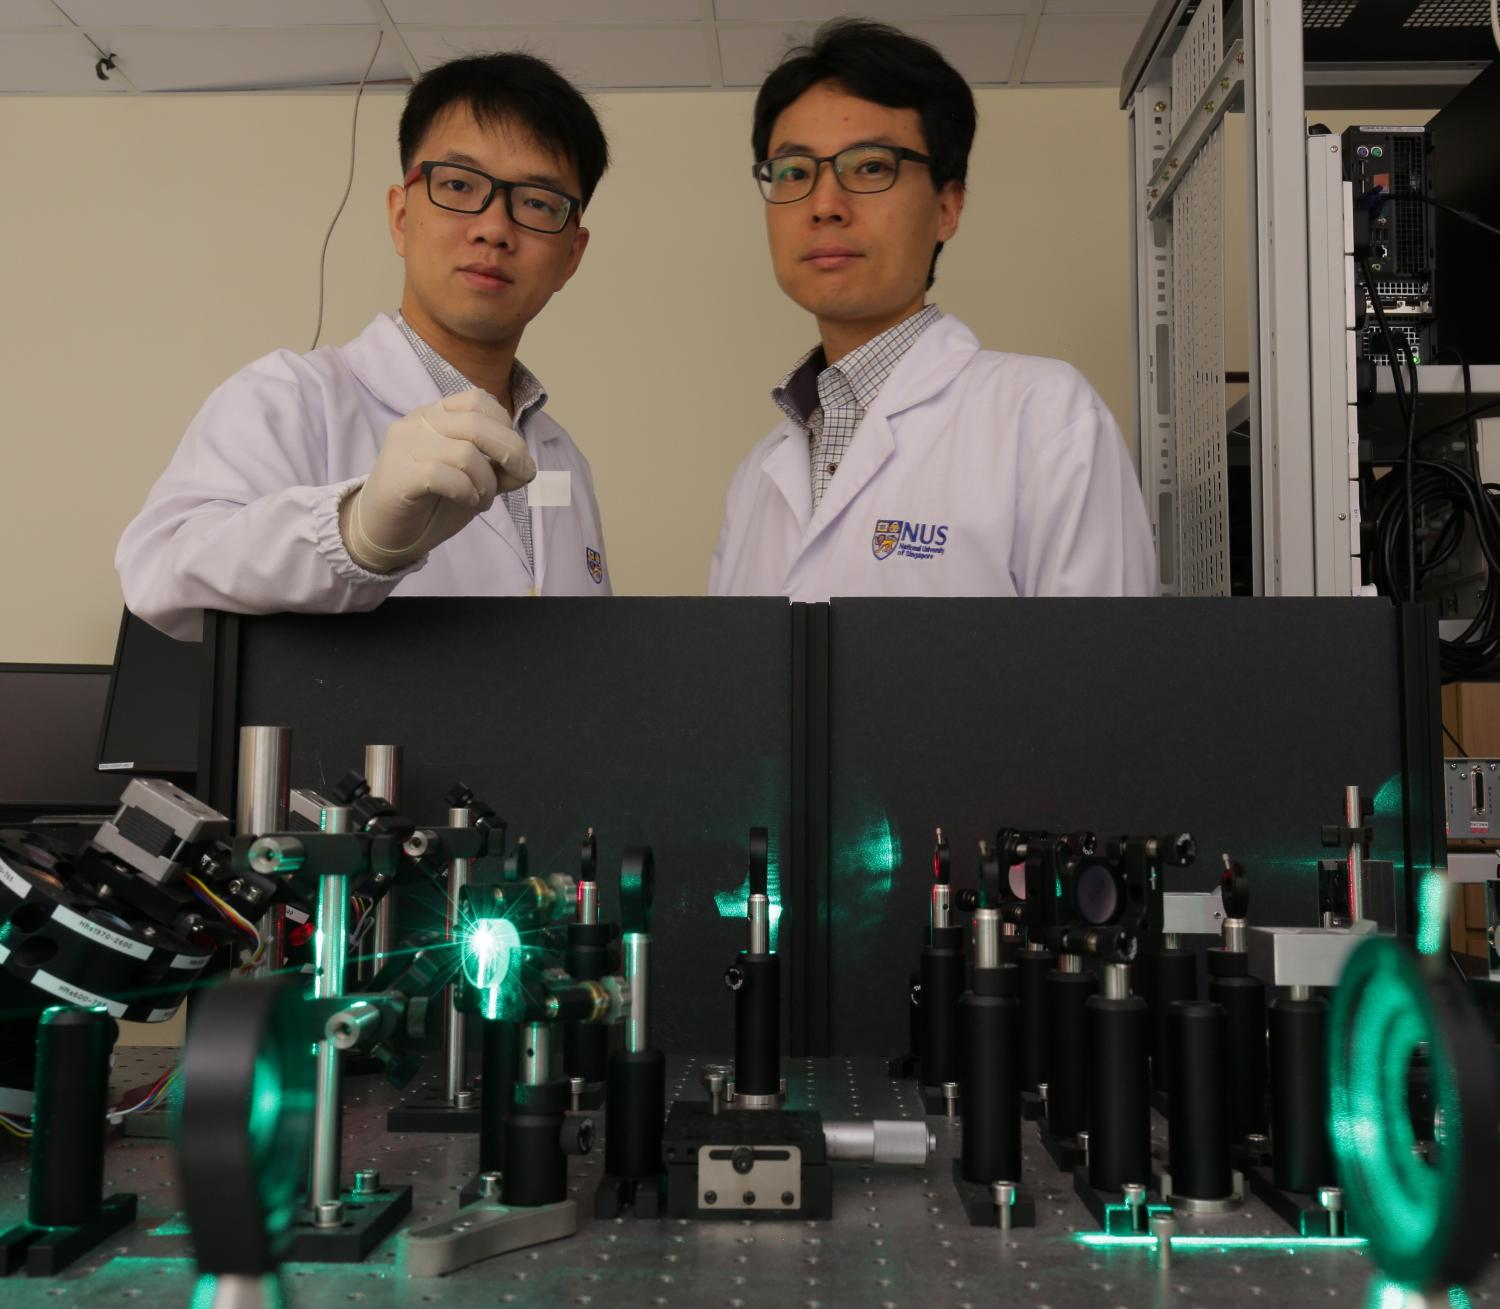 Low Cost Flexible Terahertz Radiation Source For Fast And Non Transistors The Teams Thz Sources Which Can Be Powered By A Power Laser Present Promising Applications In Spectroscopy Safety Surveillance